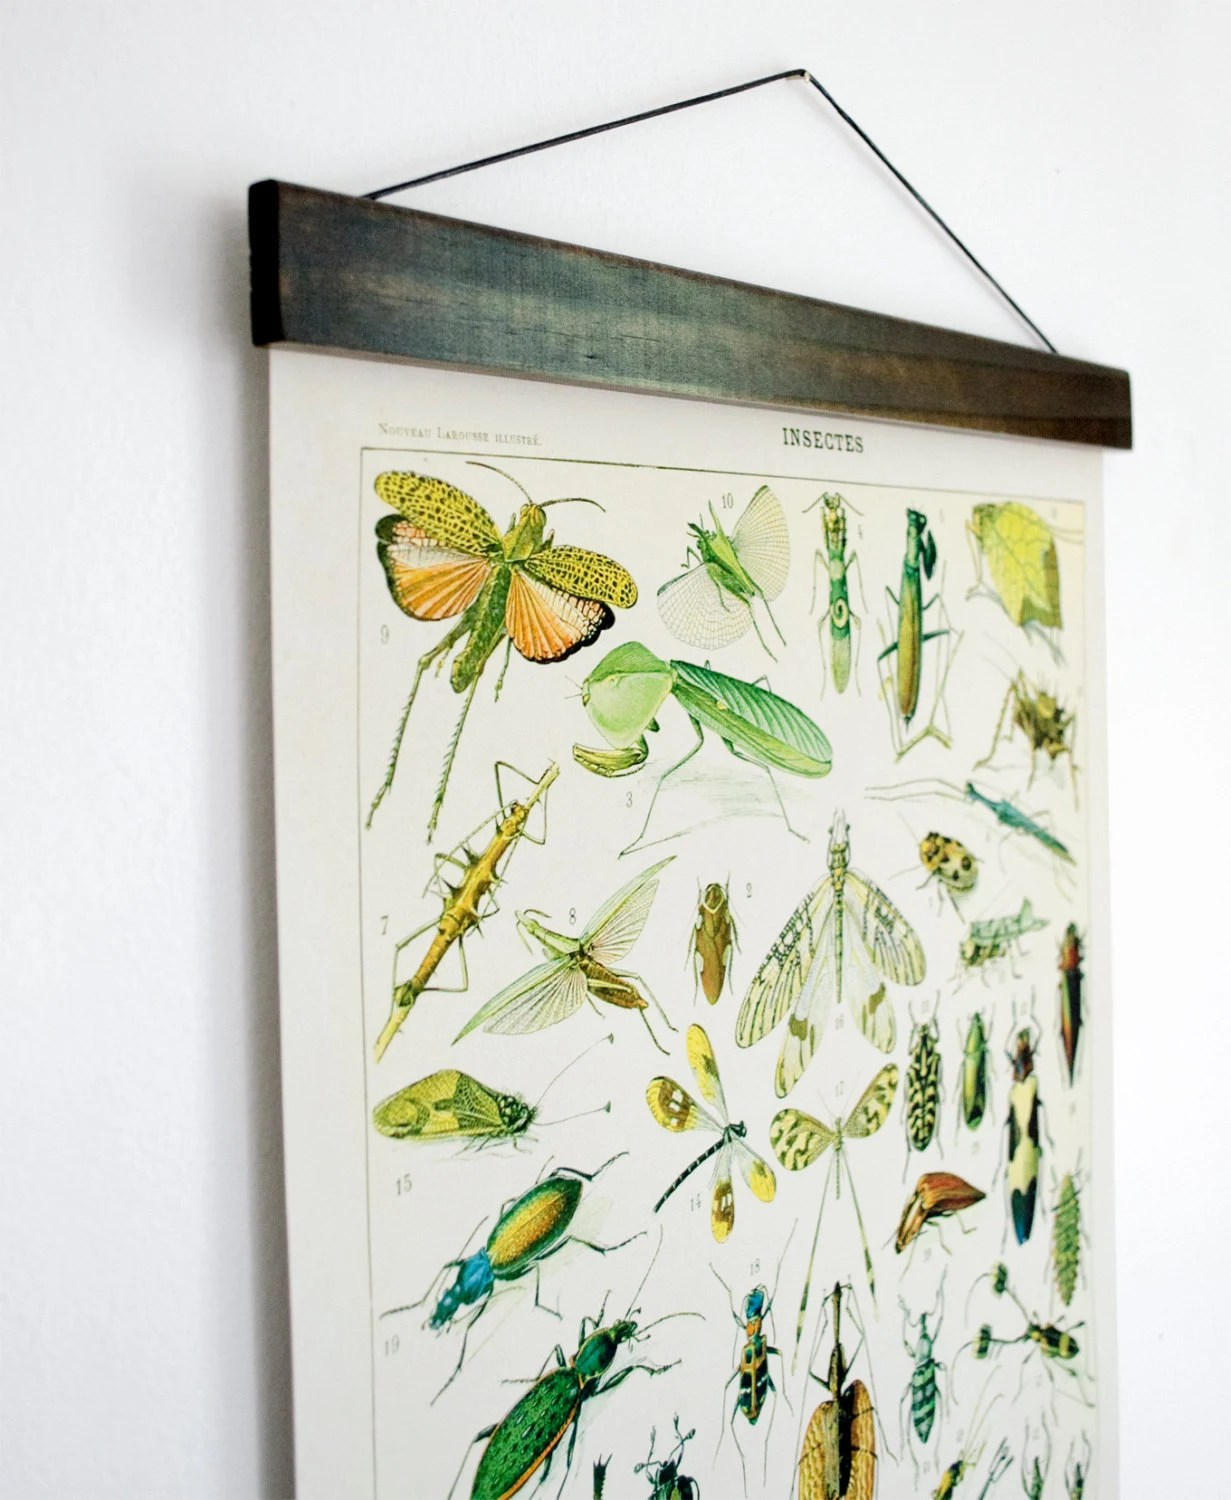 hight resolution of pull down chart insects diagram reproduction canvas print le petit larousse french encyclopedia by millot entomology bugs